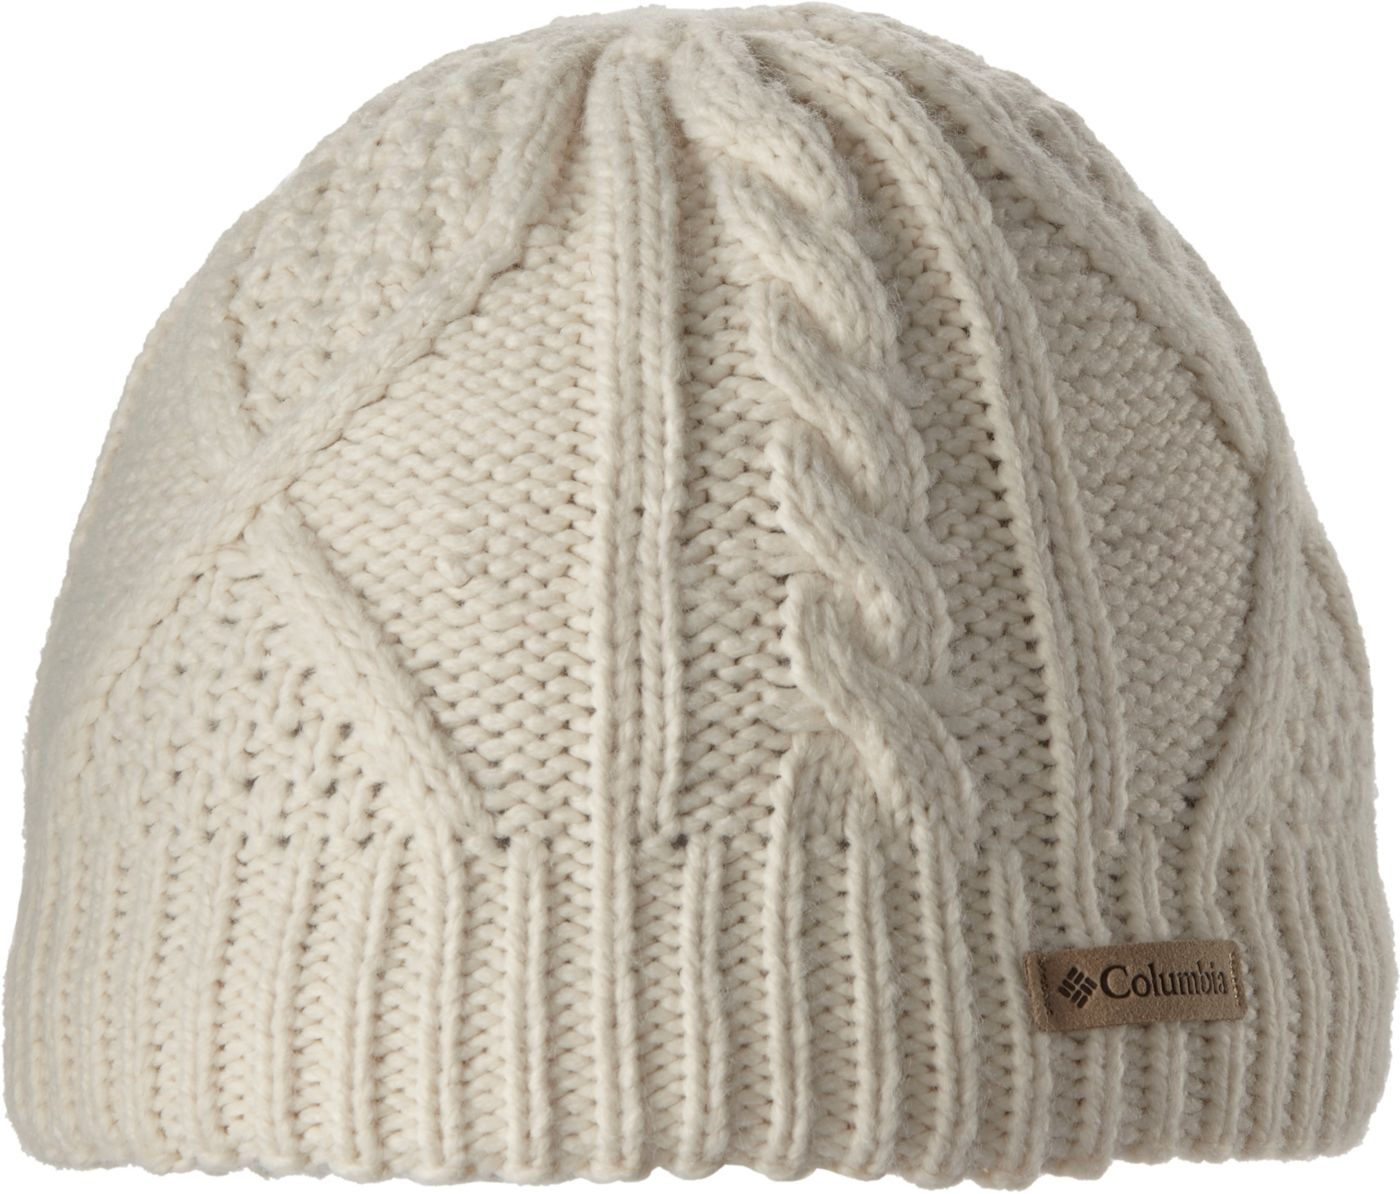 Columbia Women's Cabled Cutie Beanie